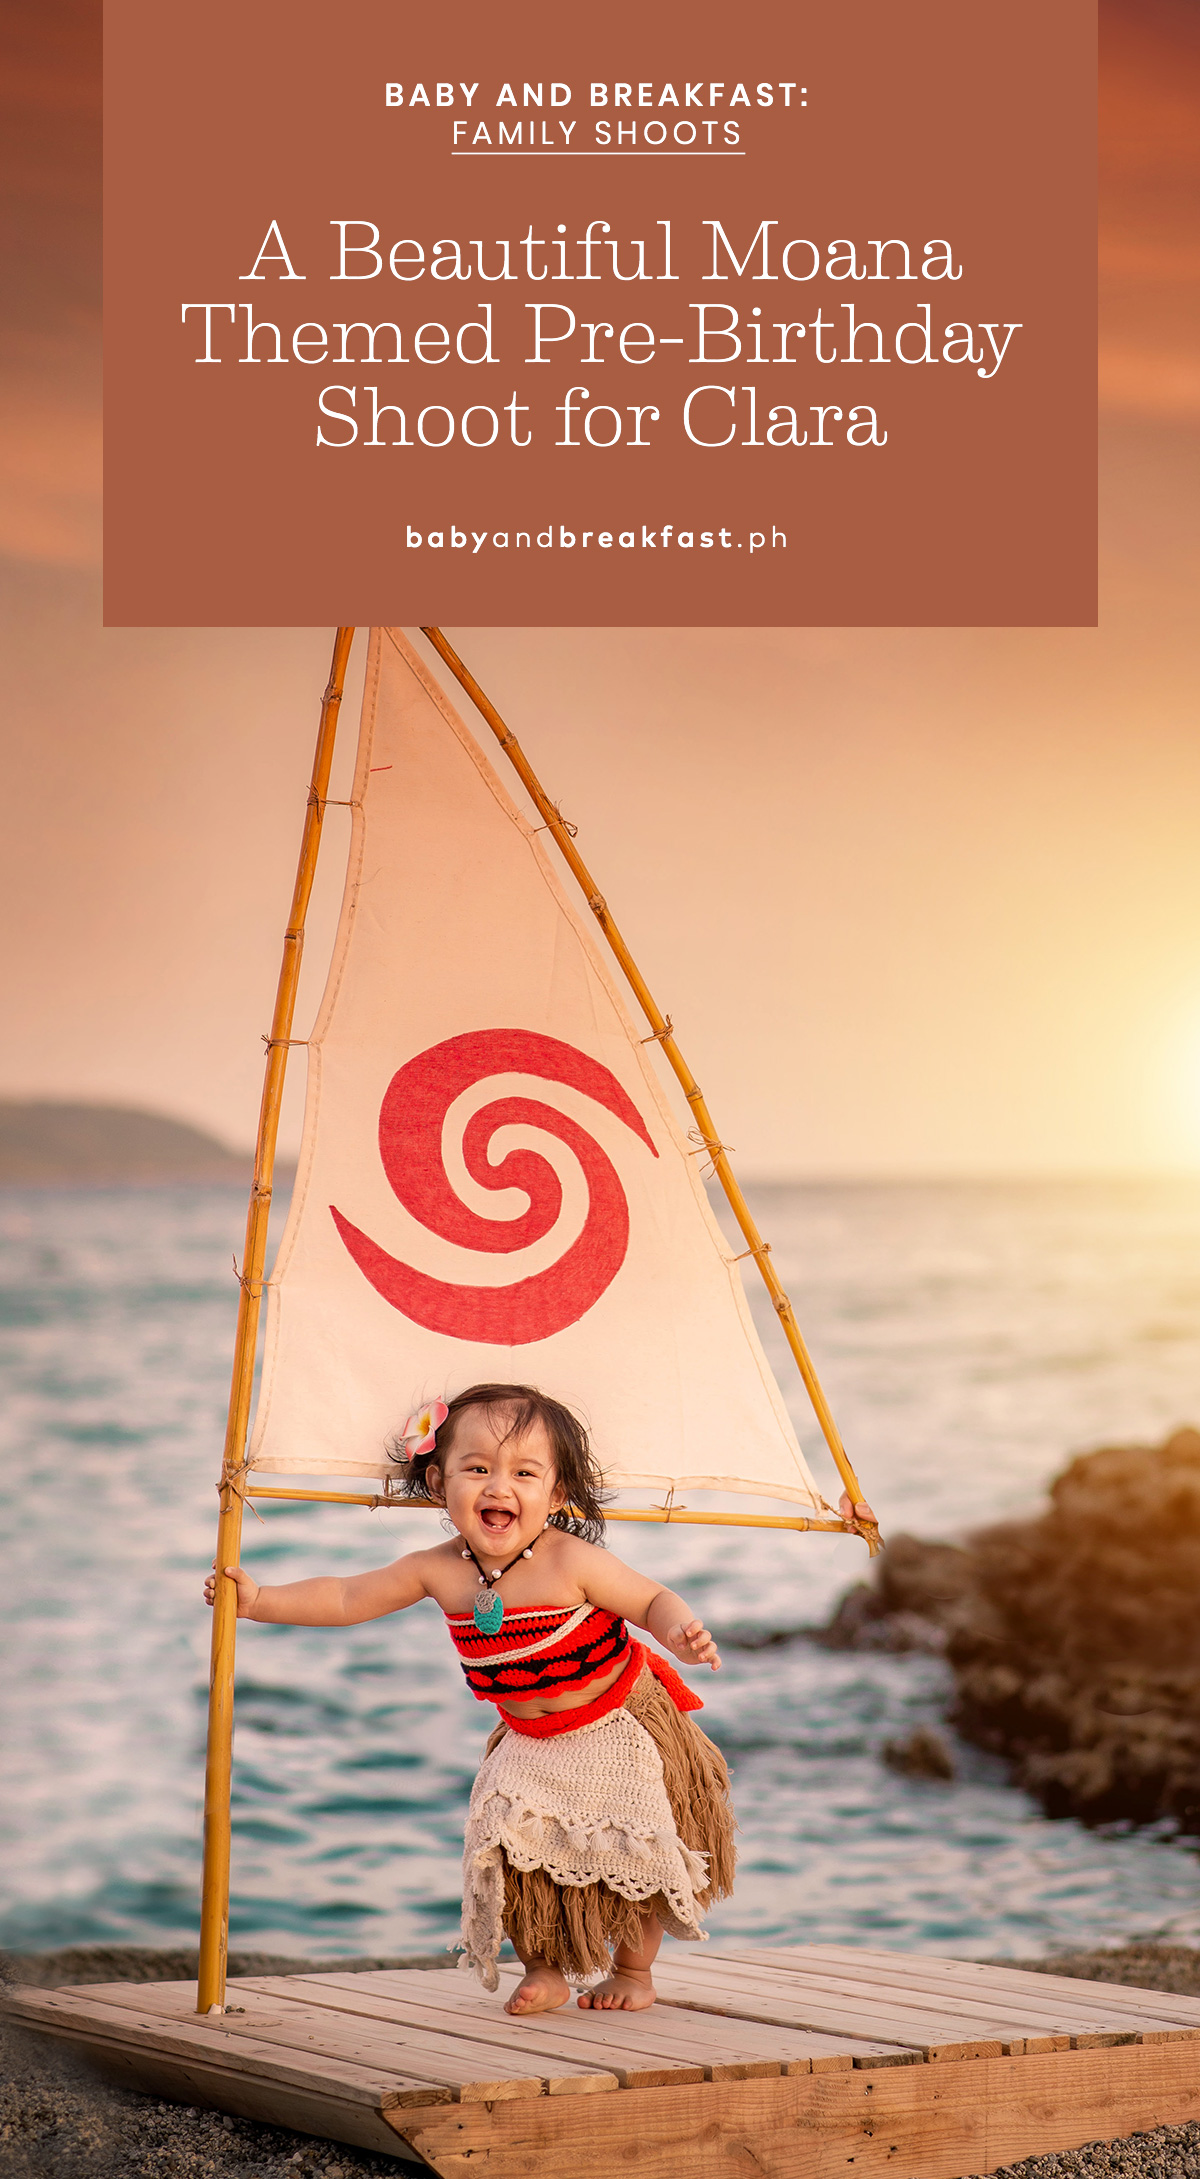 Baby and Breakfast: Family Shoots A Beautiful Moana Themed Pre-Birthday Shoot for Clara